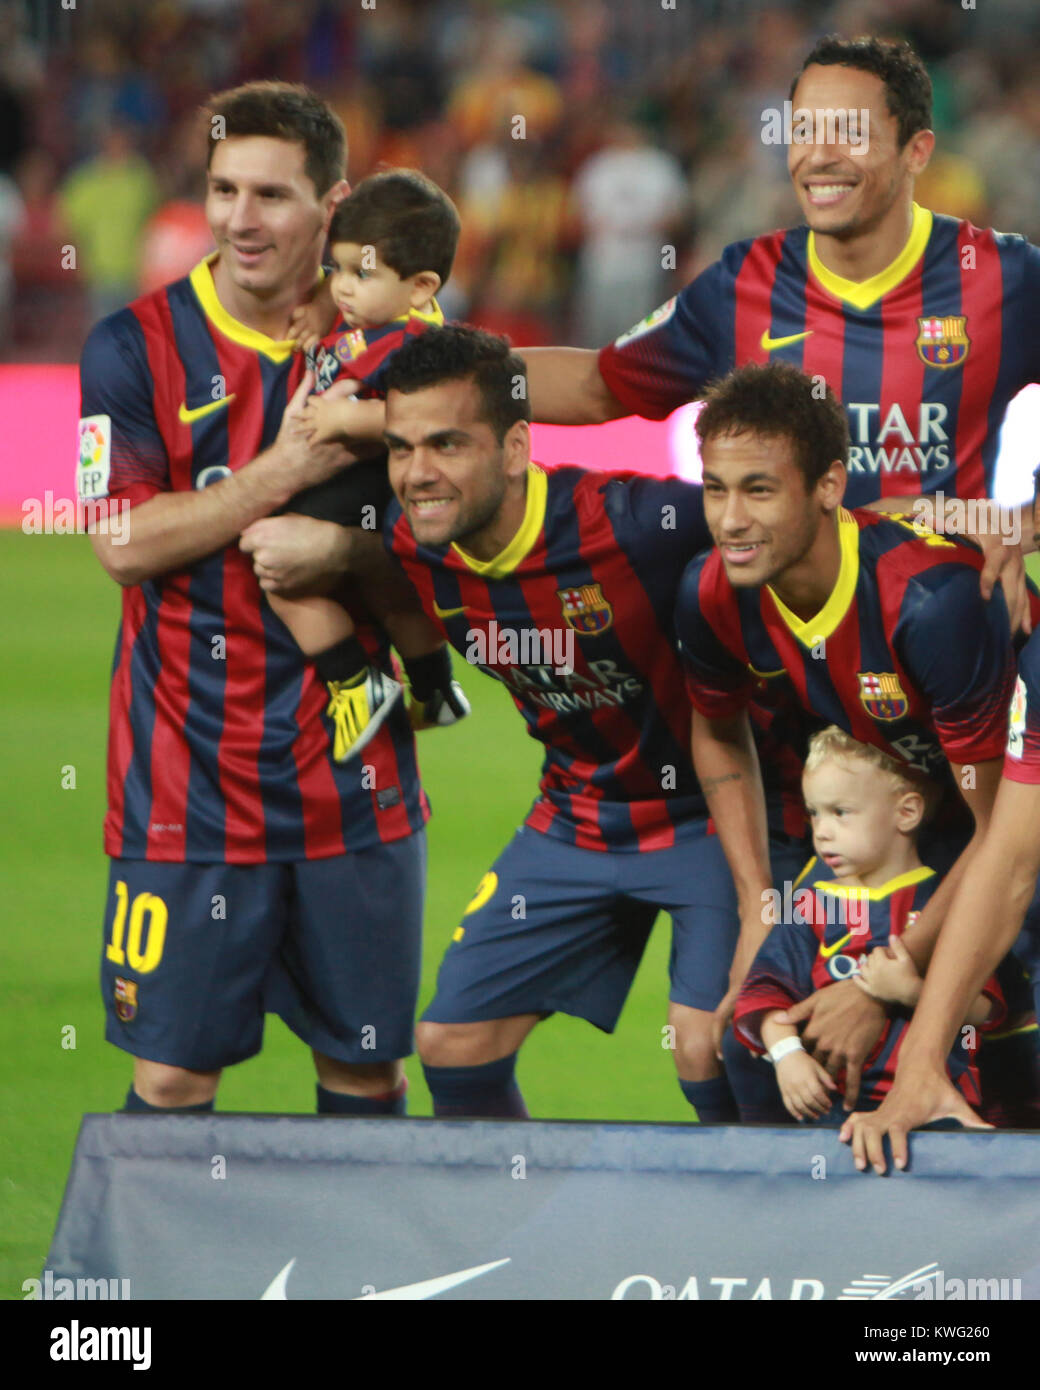 BARCELONA, SPAIN - SEPTEMBER 24: Neymar of FC Barcelona with his son Davi Lucca (L) and his team-mate Lionel Messi - Stock Image